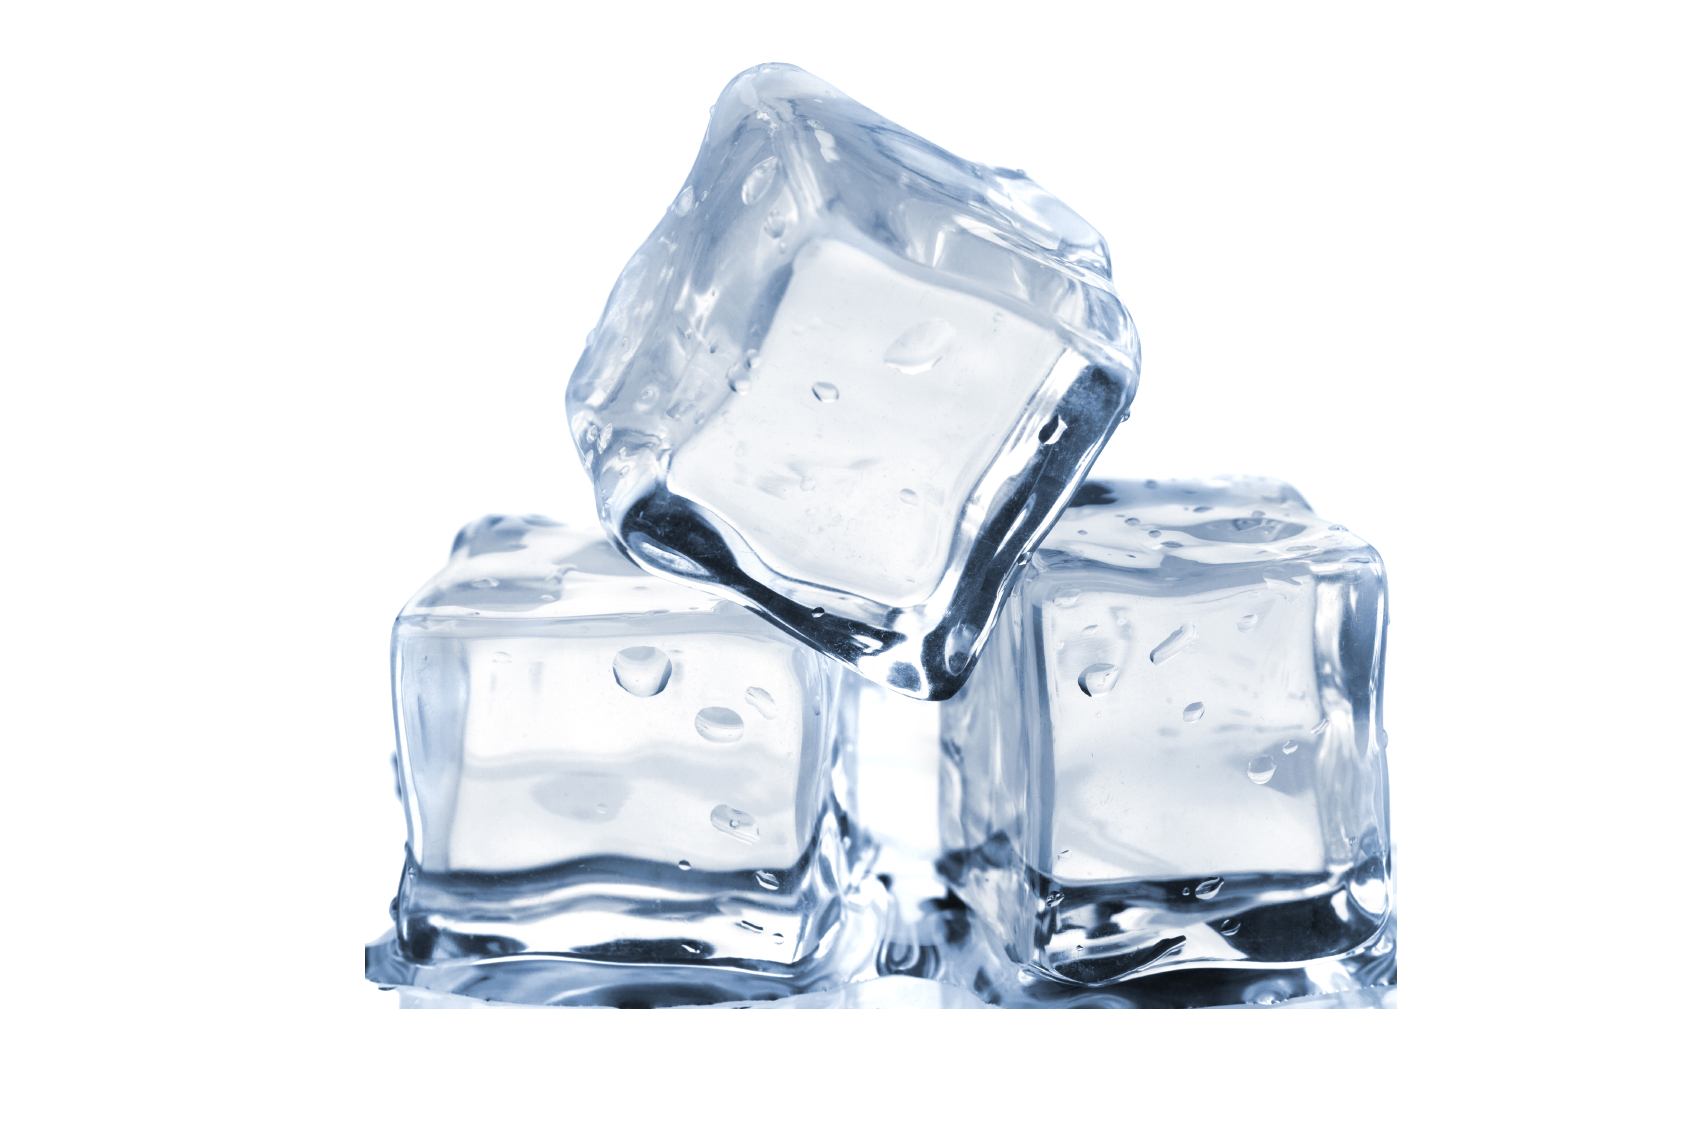 Free Download Ice Png Images image #31293